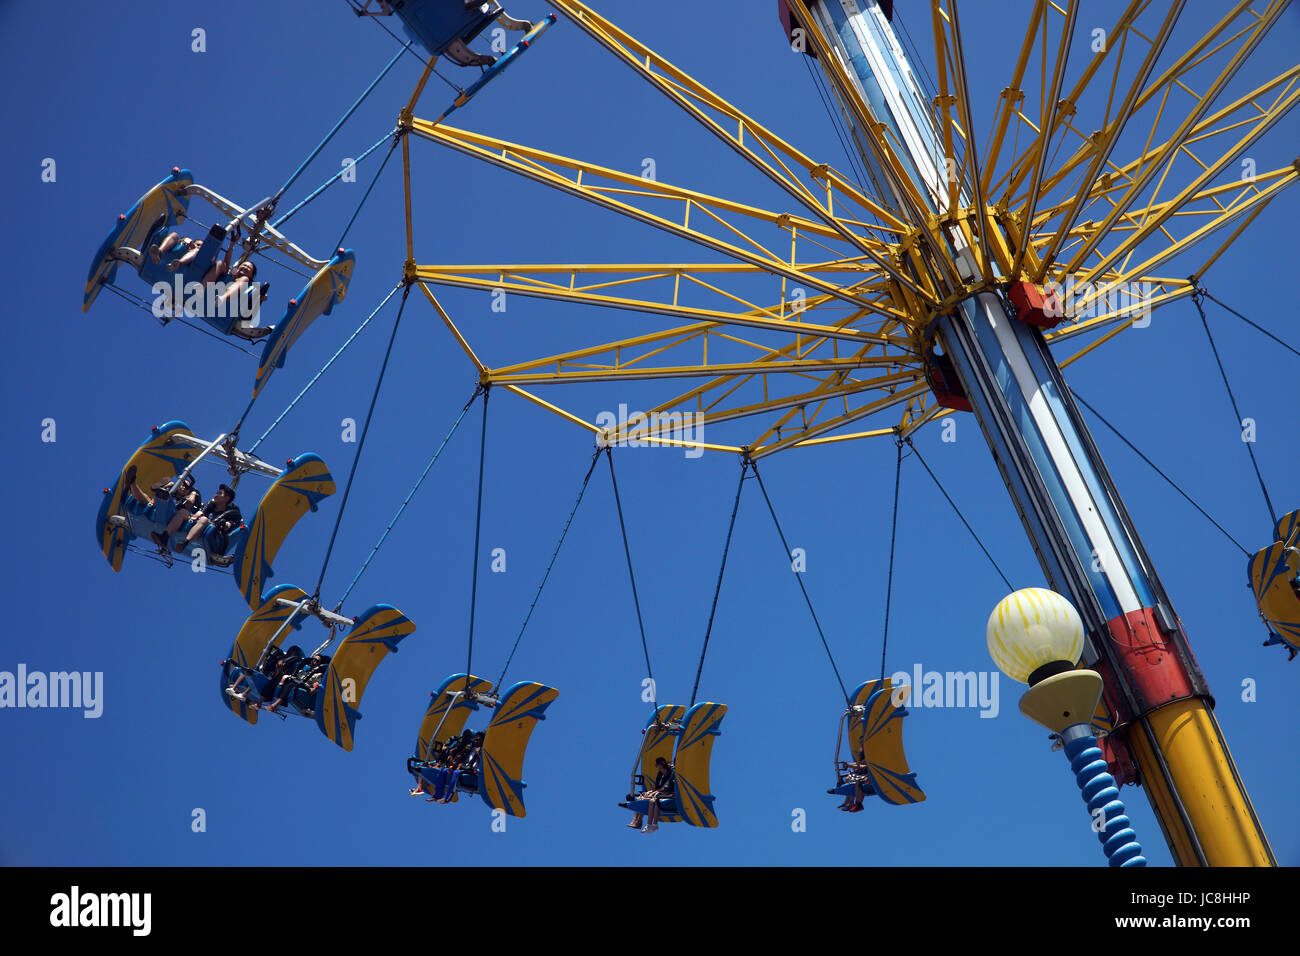 One of the carnival themed rides at Ocean Park Hong Kong. - Stock Image